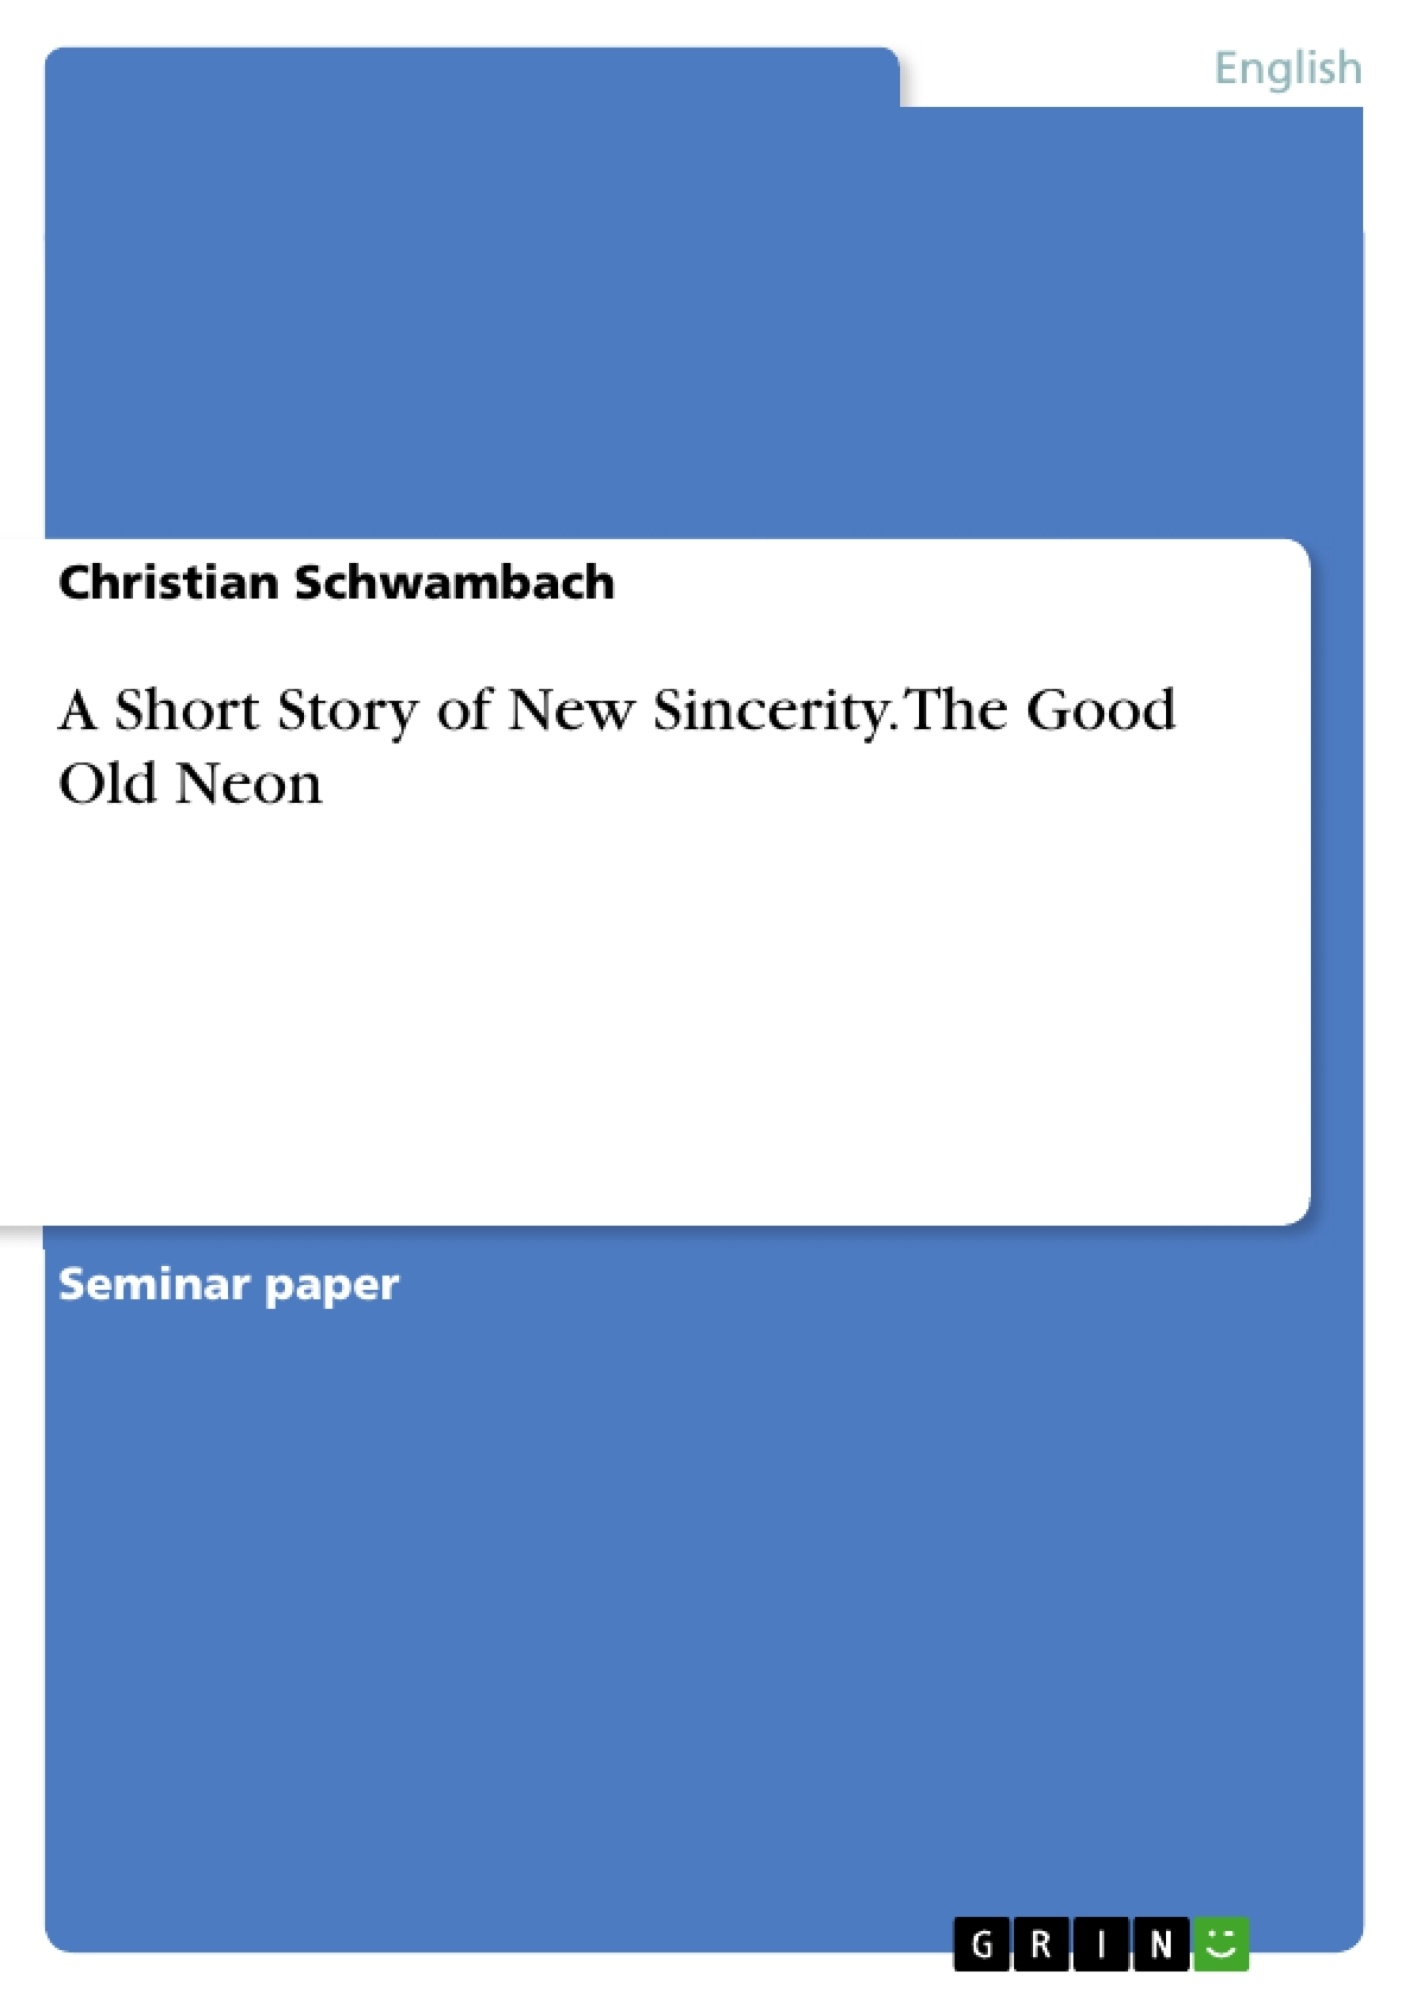 Title: A Short Story of New Sincerity. The Good Old Neon